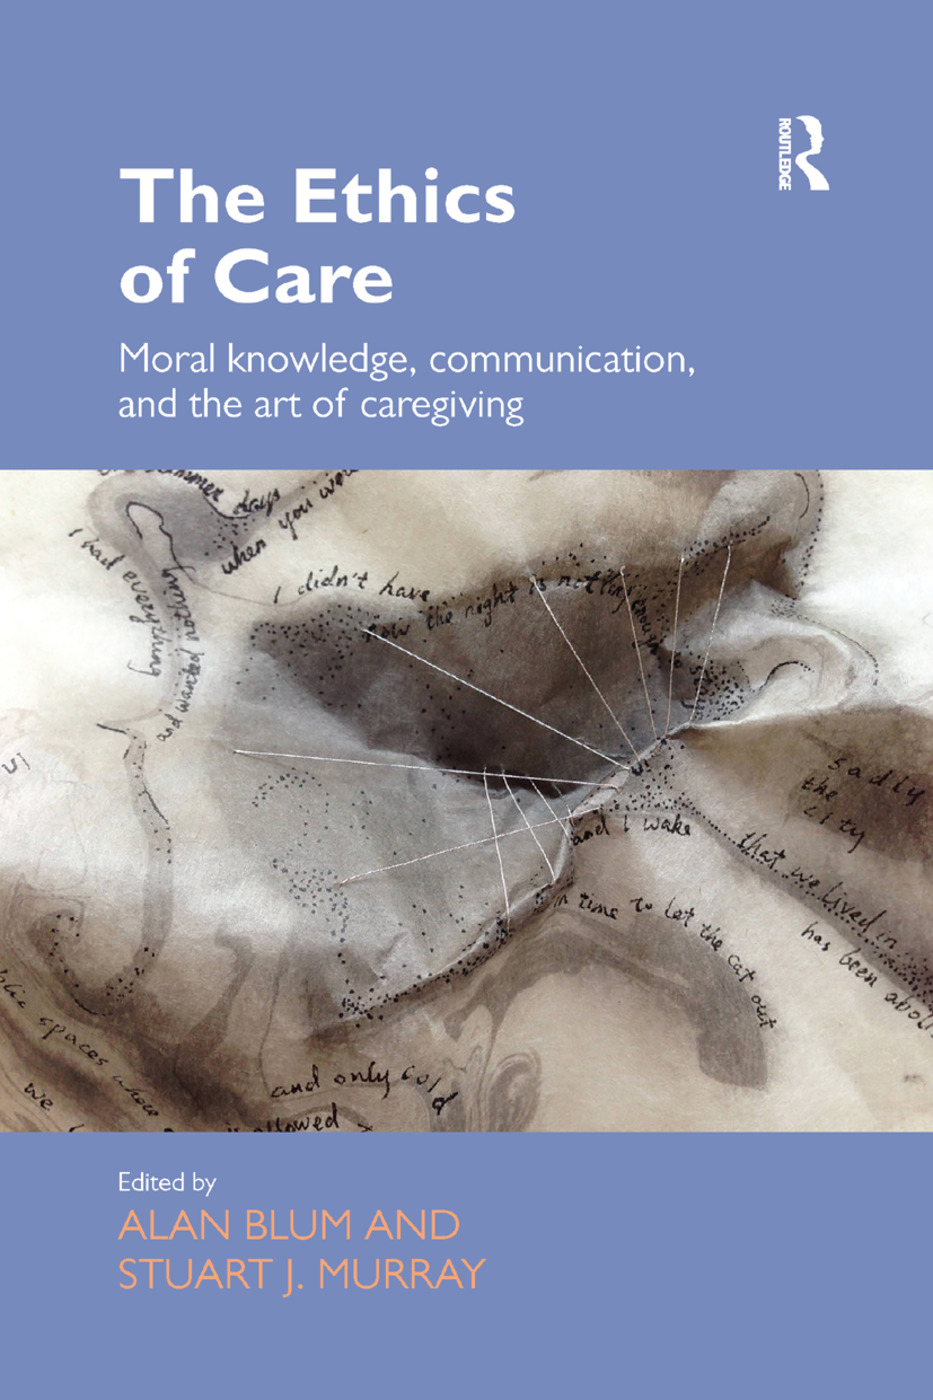 The Ethics of Care: Moral Knowledge, Communication, and the Art of Caregiving book cover